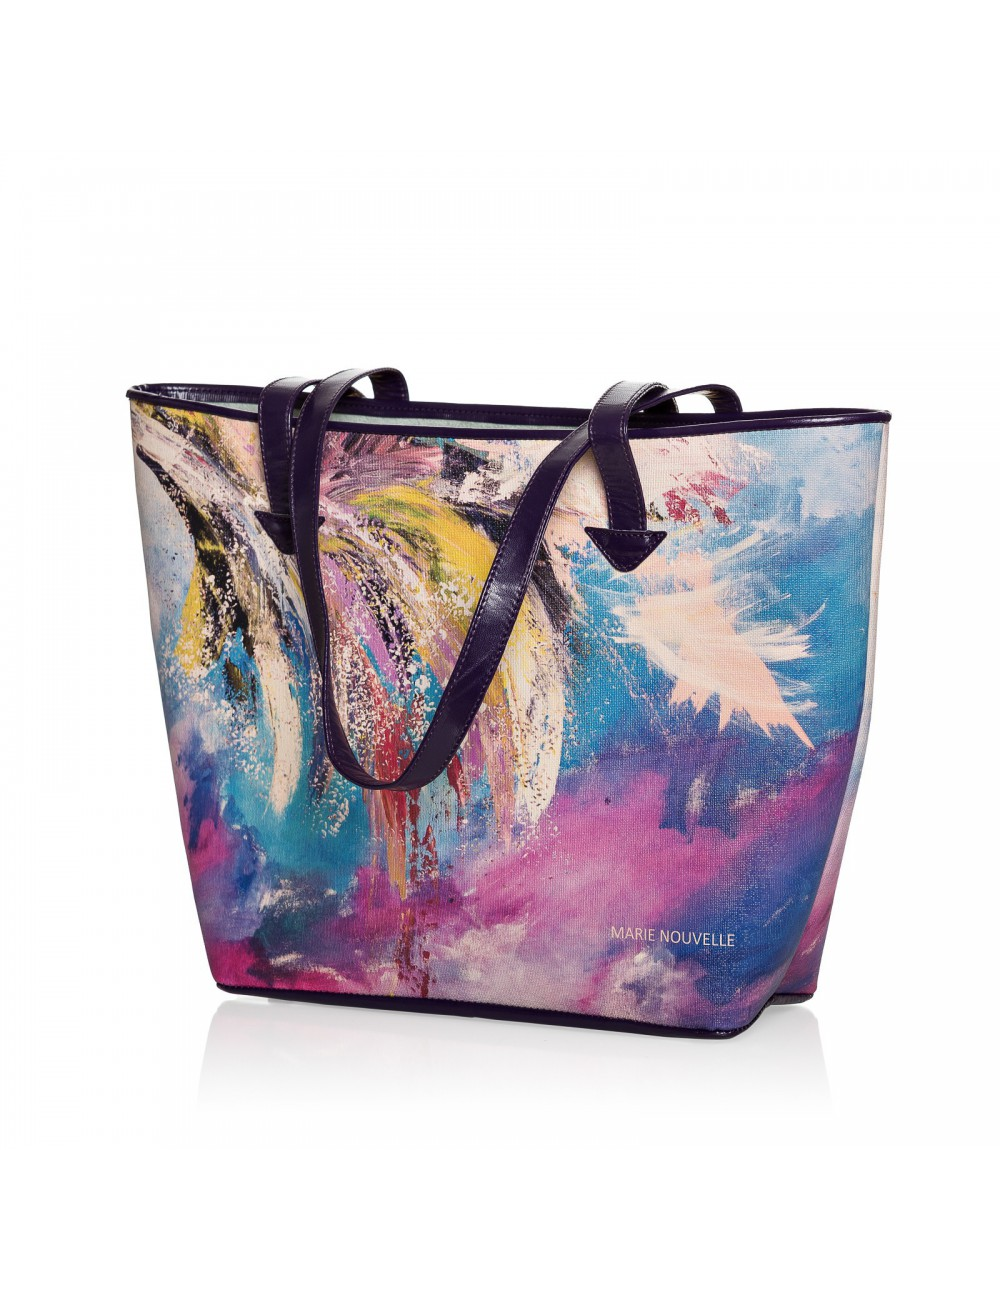 The Ballad Printed Bag